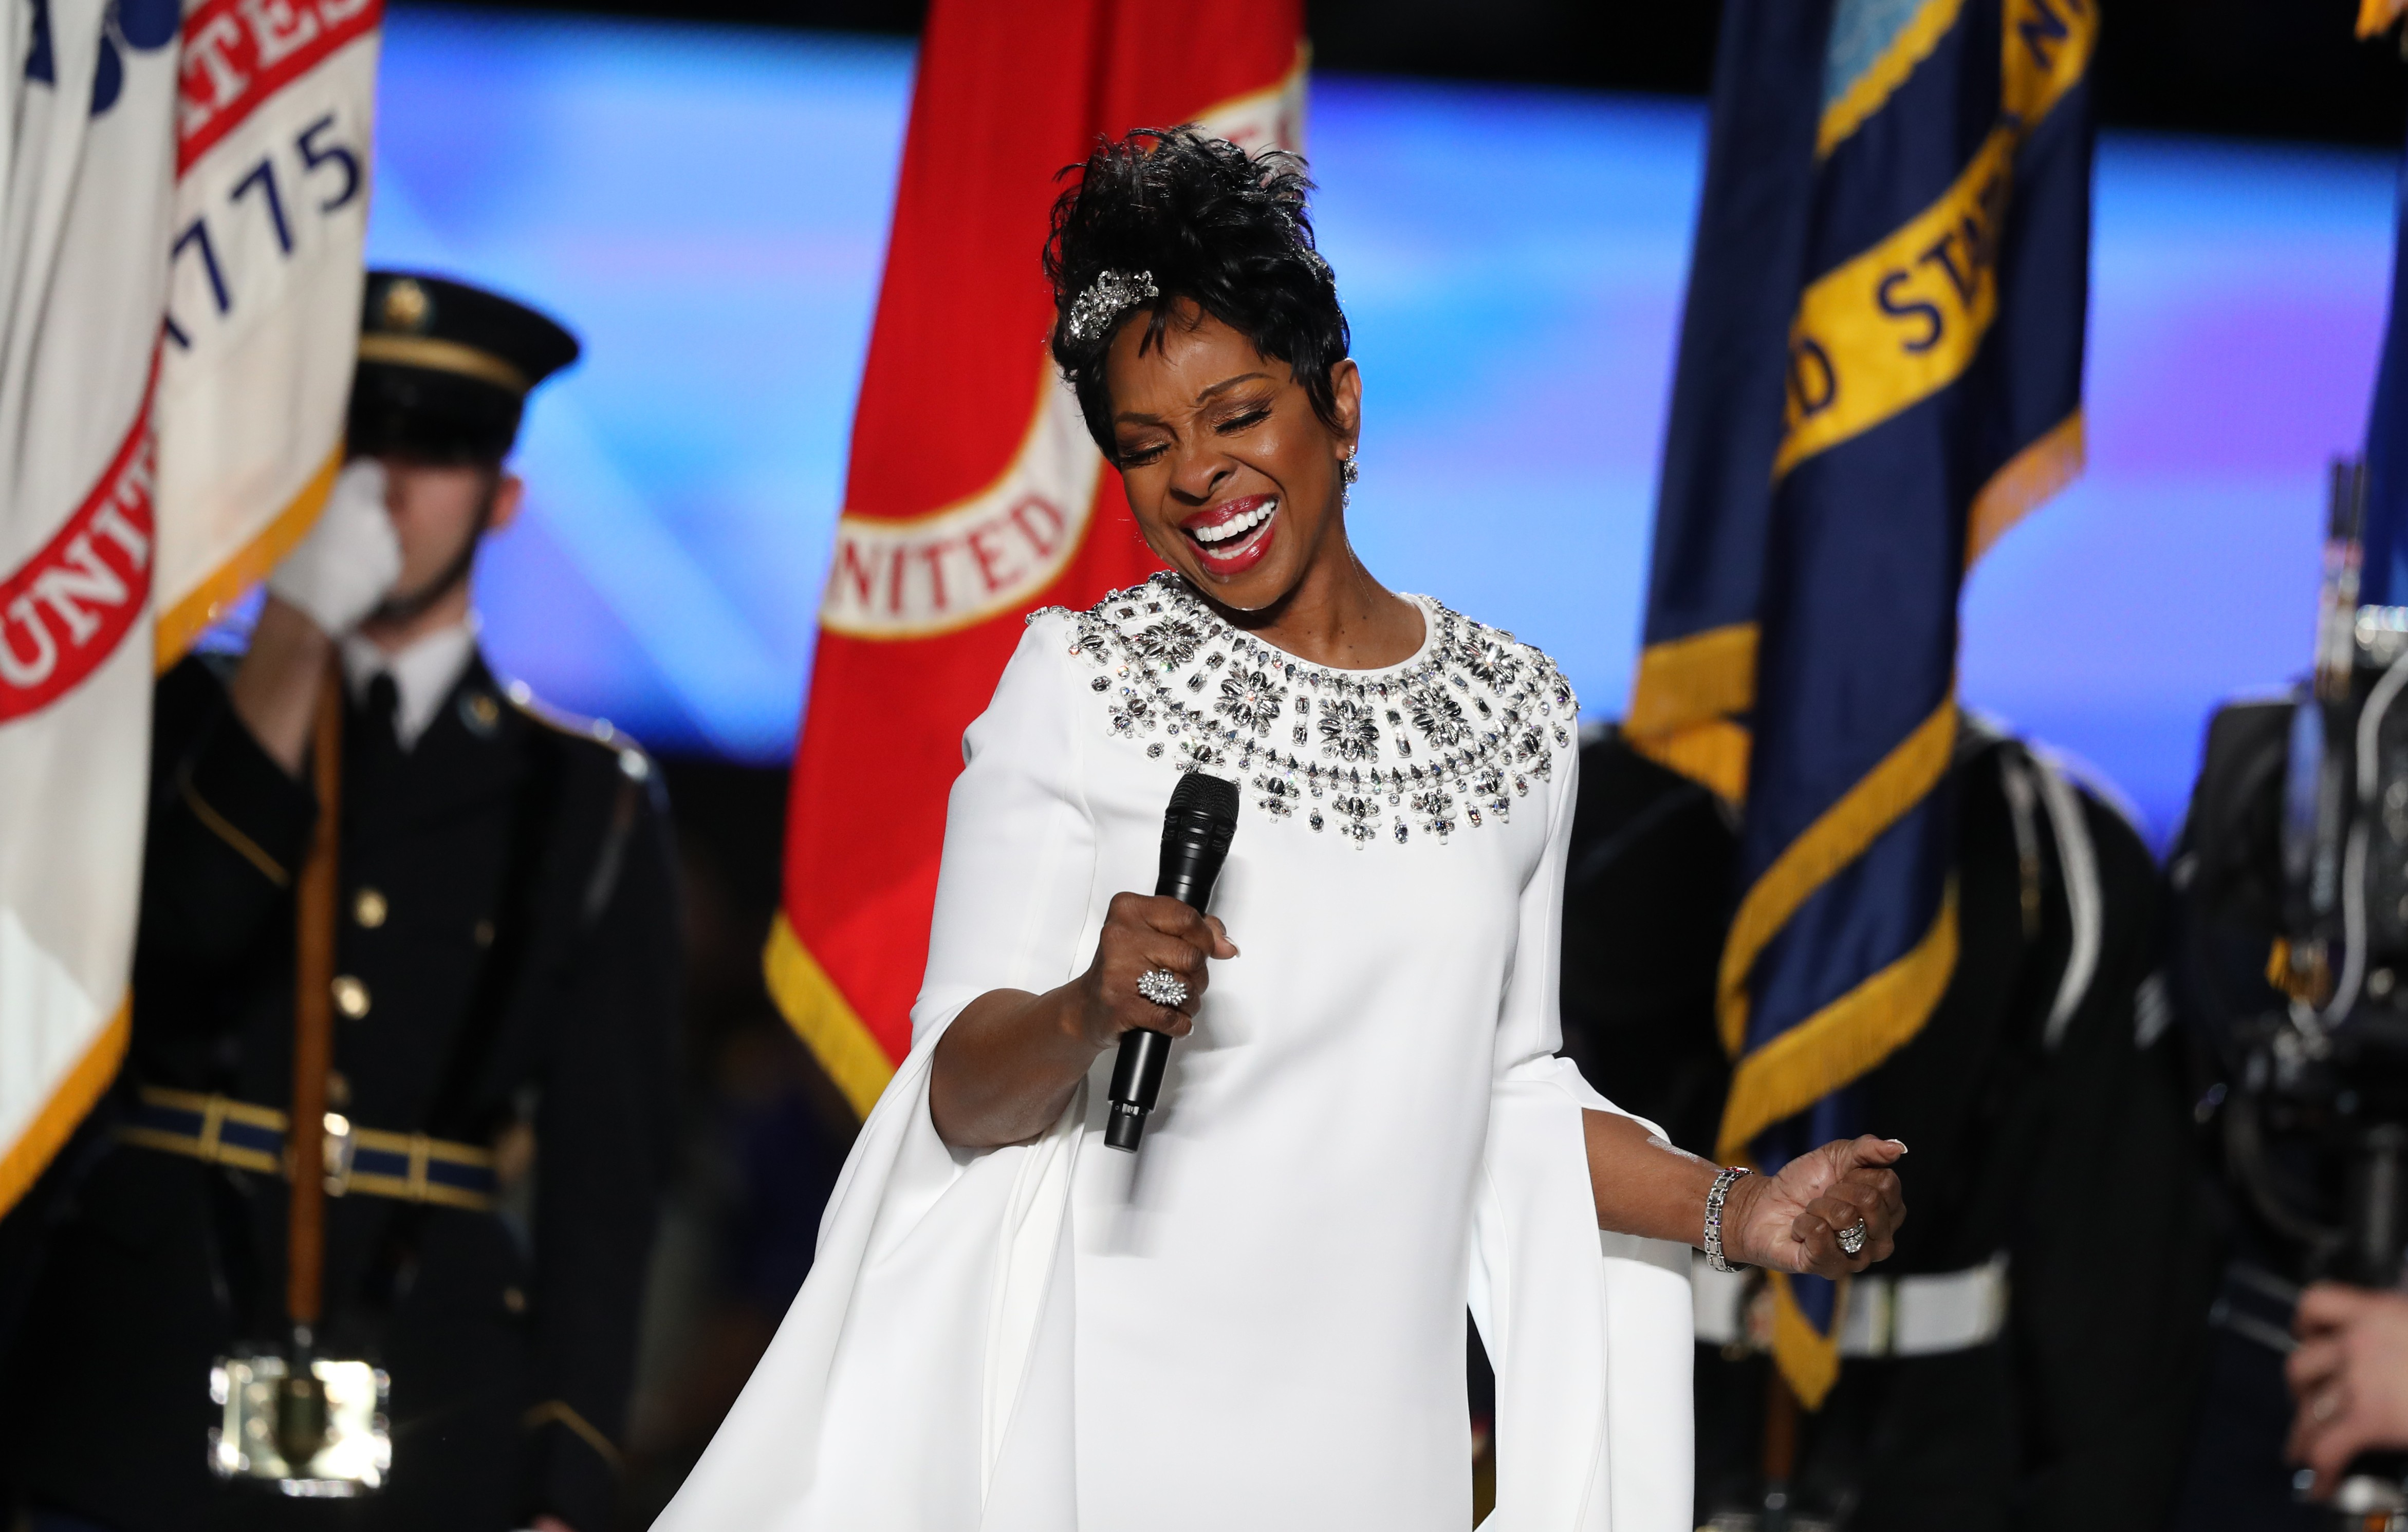 gladys-knight-sings-the-national-anthem-at-super-bowl-2019-watch